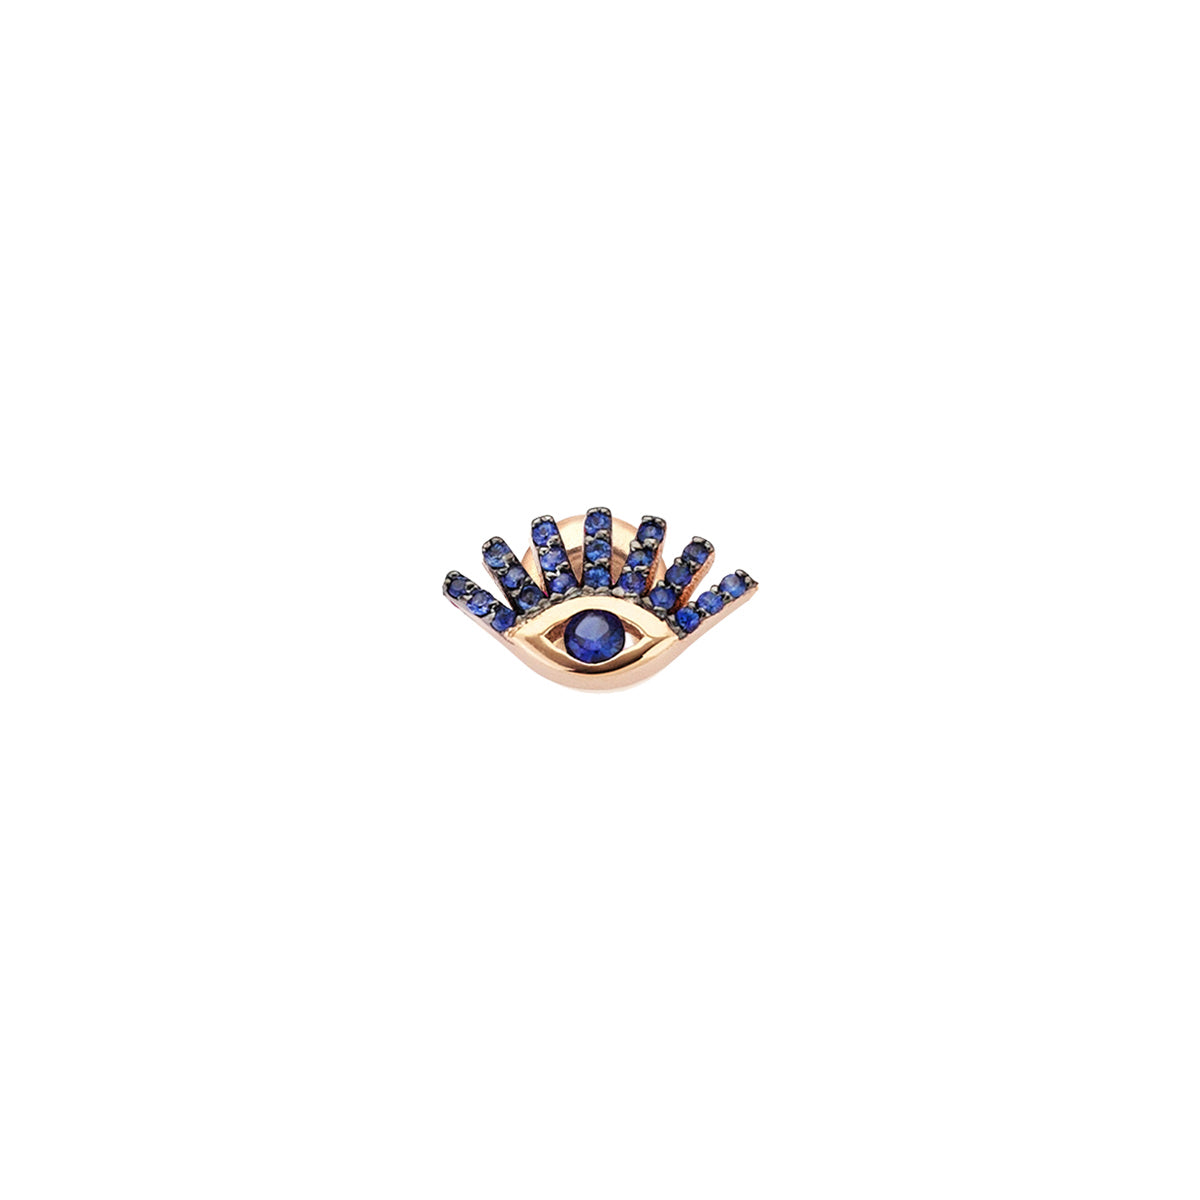 Sapphire Evil Eye Stud by Kismet for Broken English Jewelry